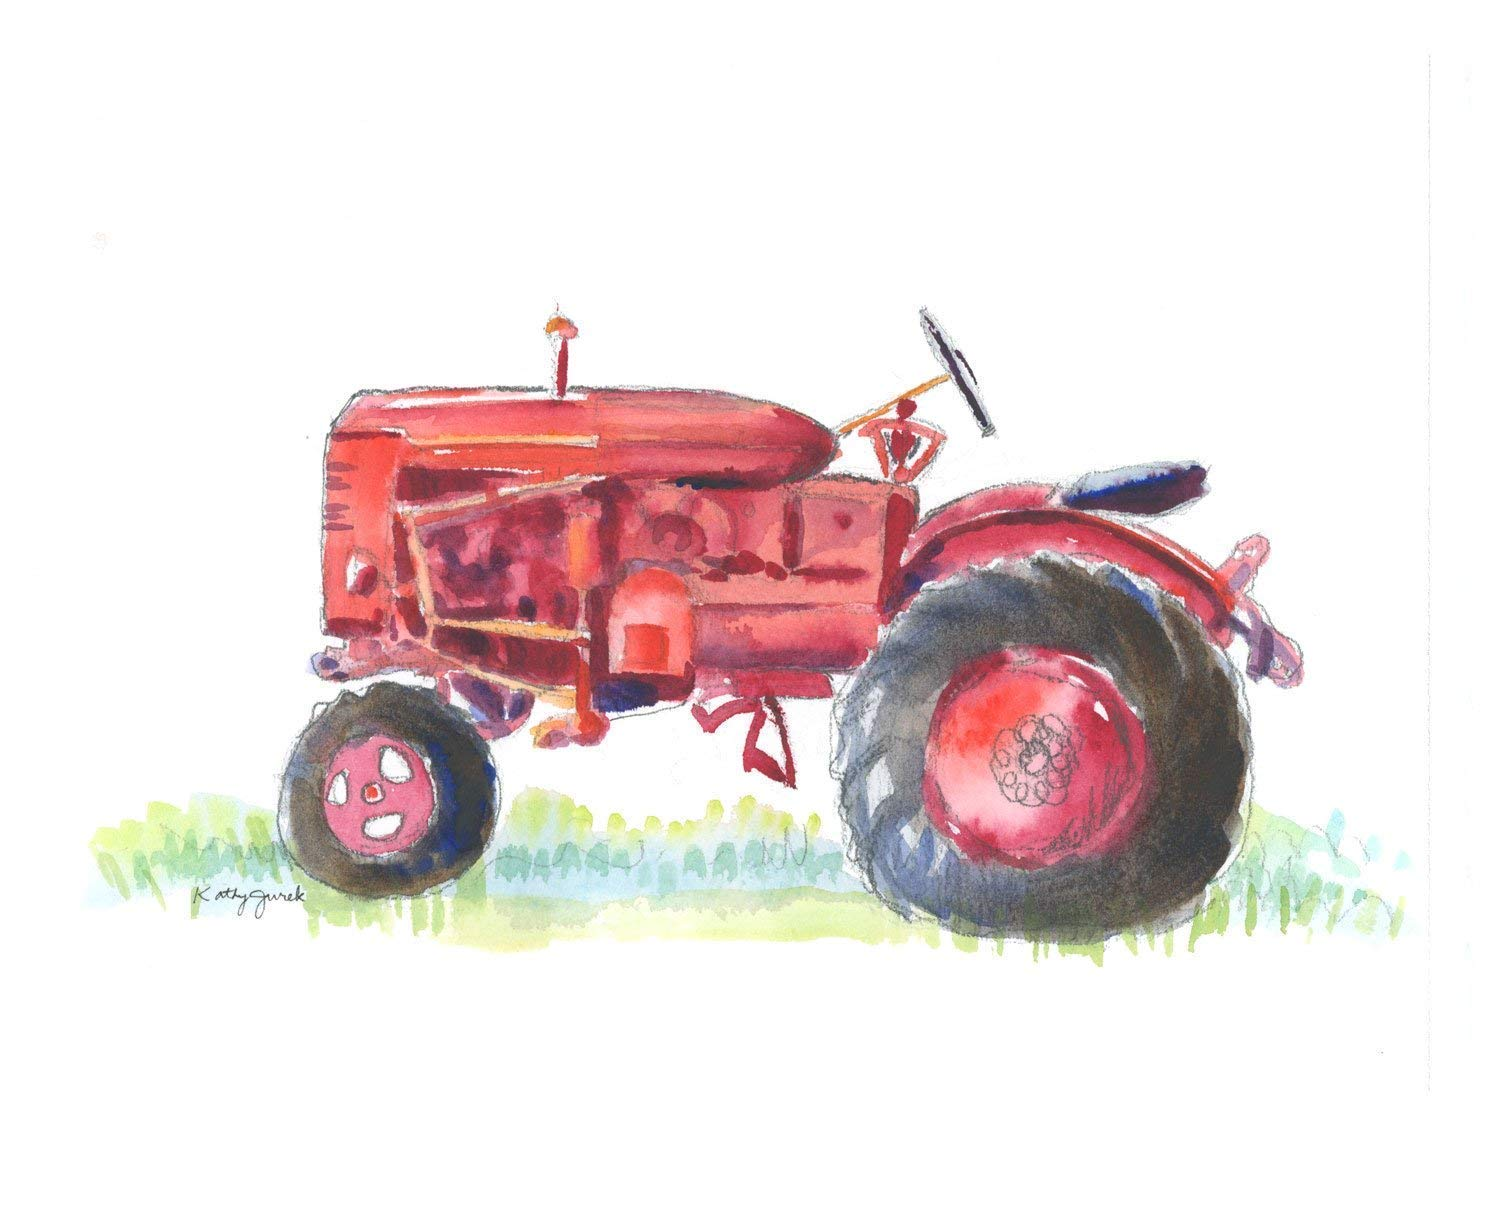 Vintage Red Farm Tractor Wall Art Print for Farmhouse Decor   Nursery Wall Art   8.5 x 11 Inch Gallery Quality Fine Art Giclée Print by Little Splashes of Color